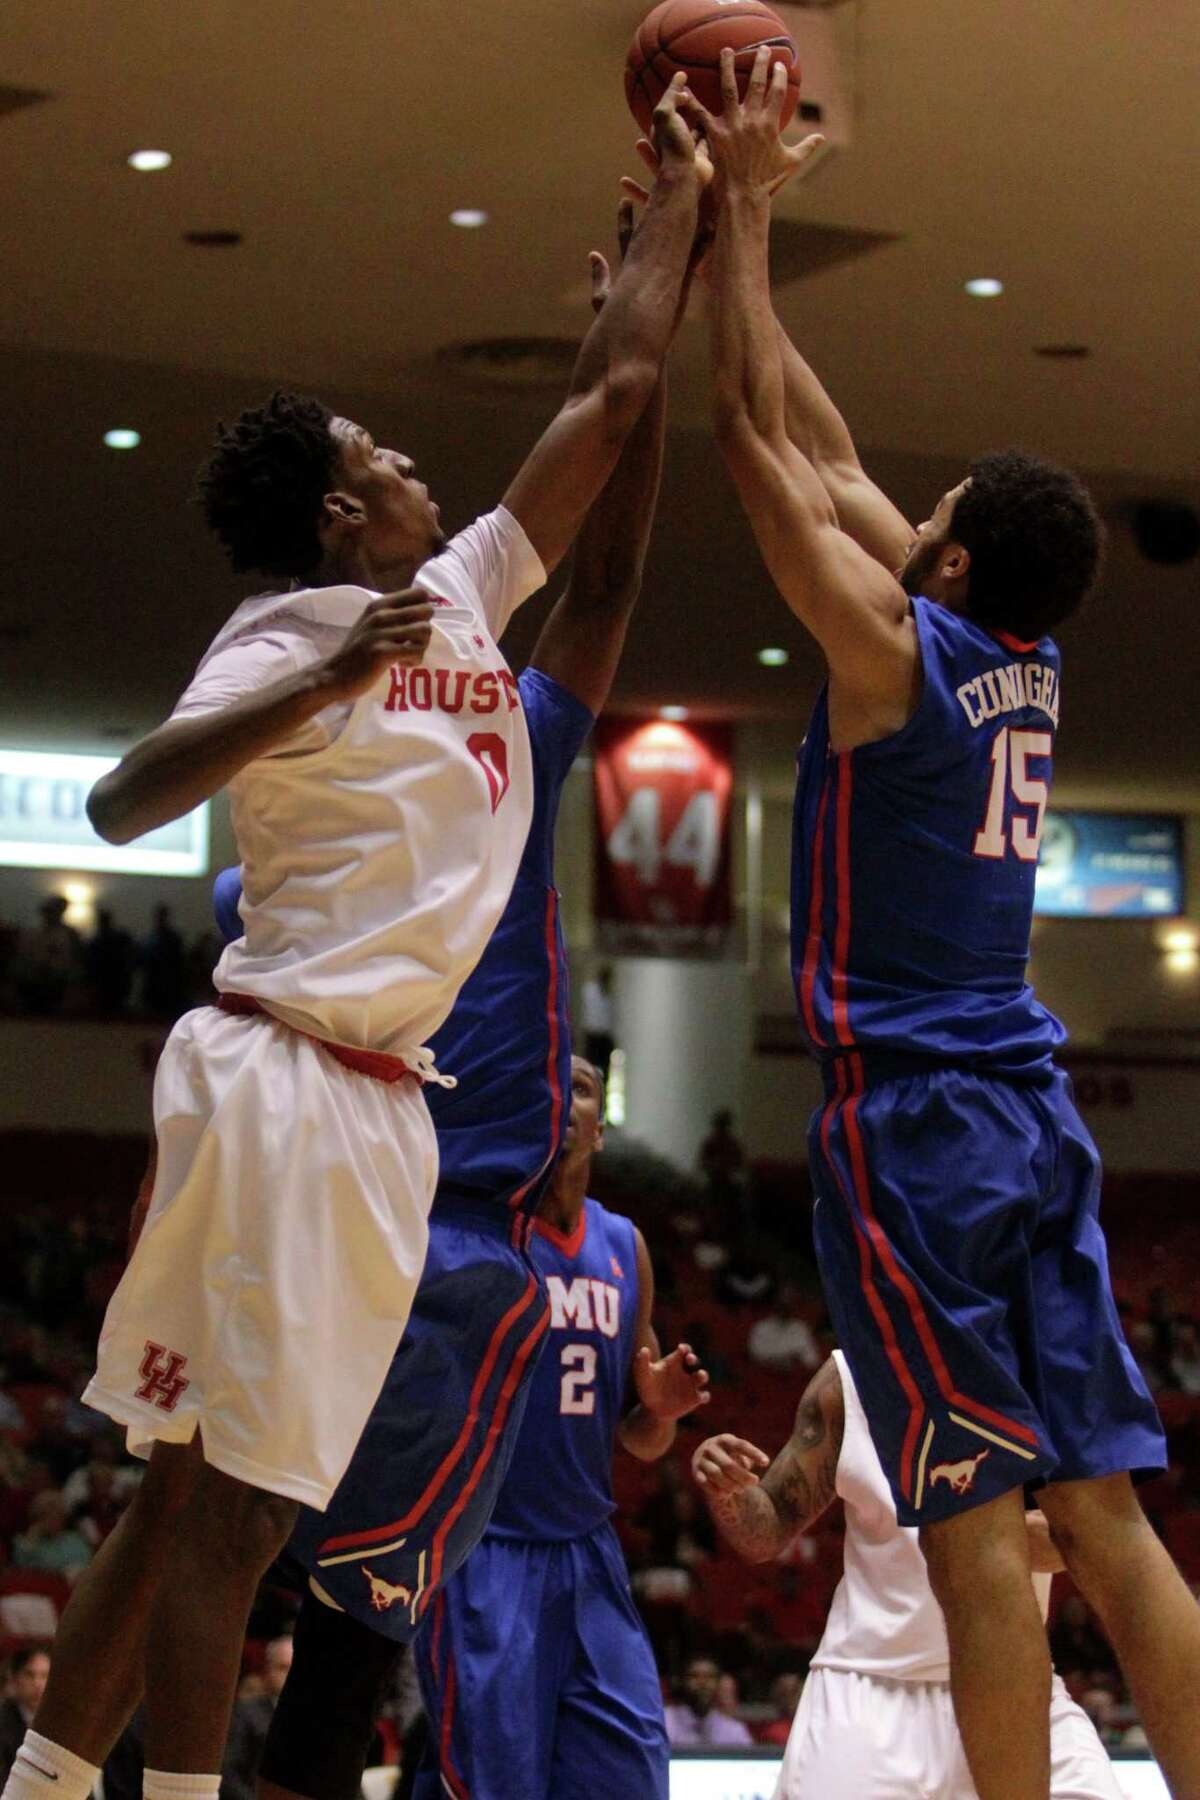 Houston Cougars Danrad Knowles (0) and SMU's Cannen Cunningham (15) go after a rebound during the first half of a college basketball game on Thursday, Feb. 12, 2015, in Houston.